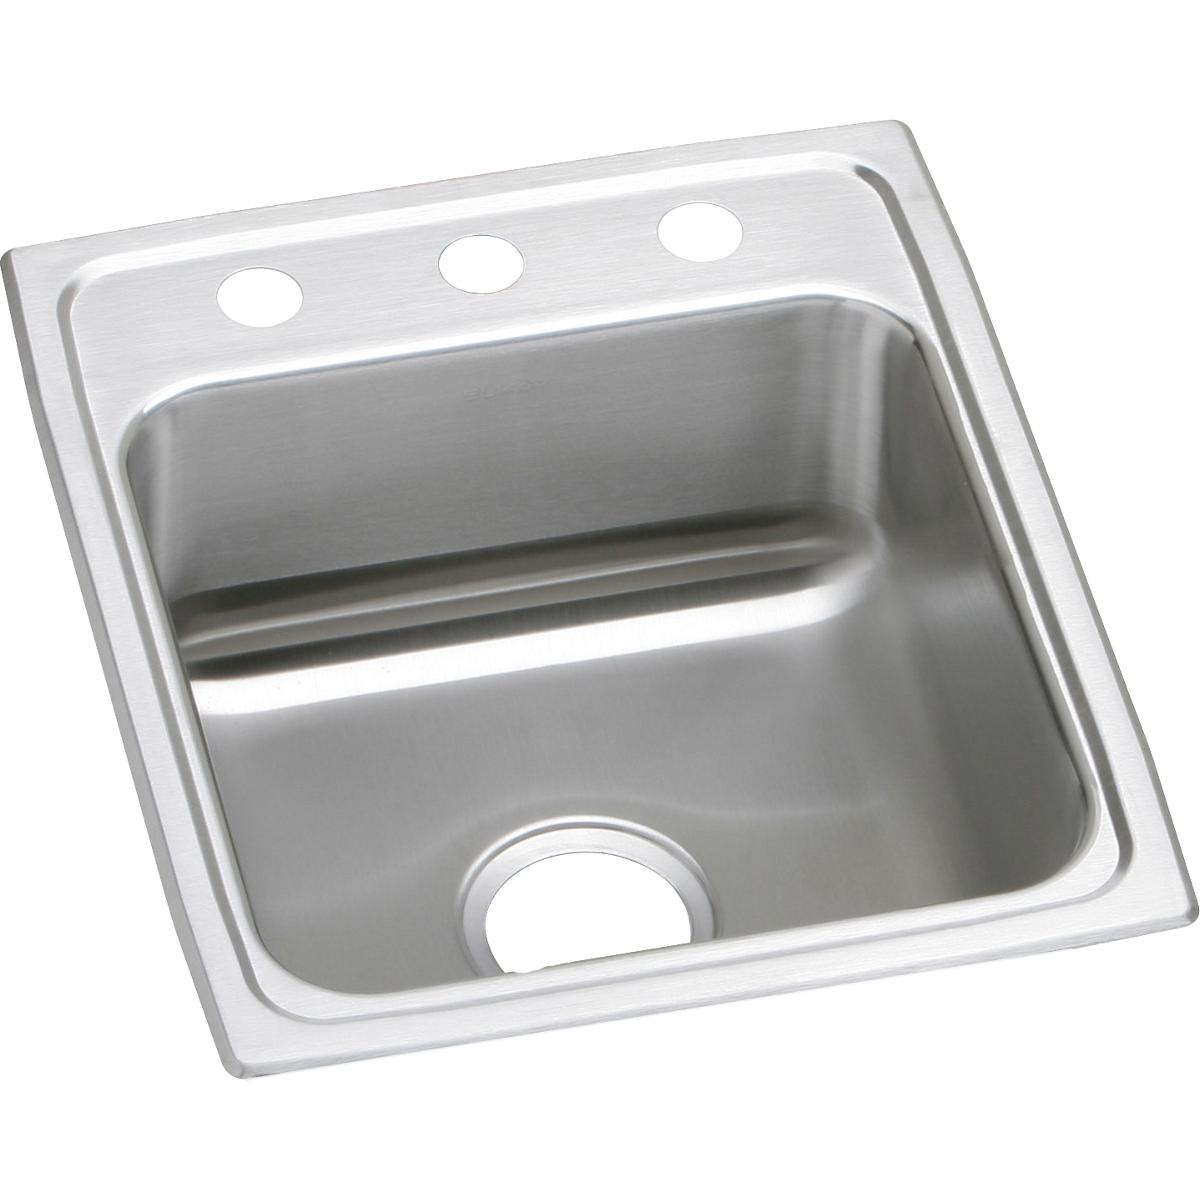 "Elkay Lustertone Classic Stainless Steel 17"" x 20"" x 7-5/8"", Single Bowl Drop-in Sink"